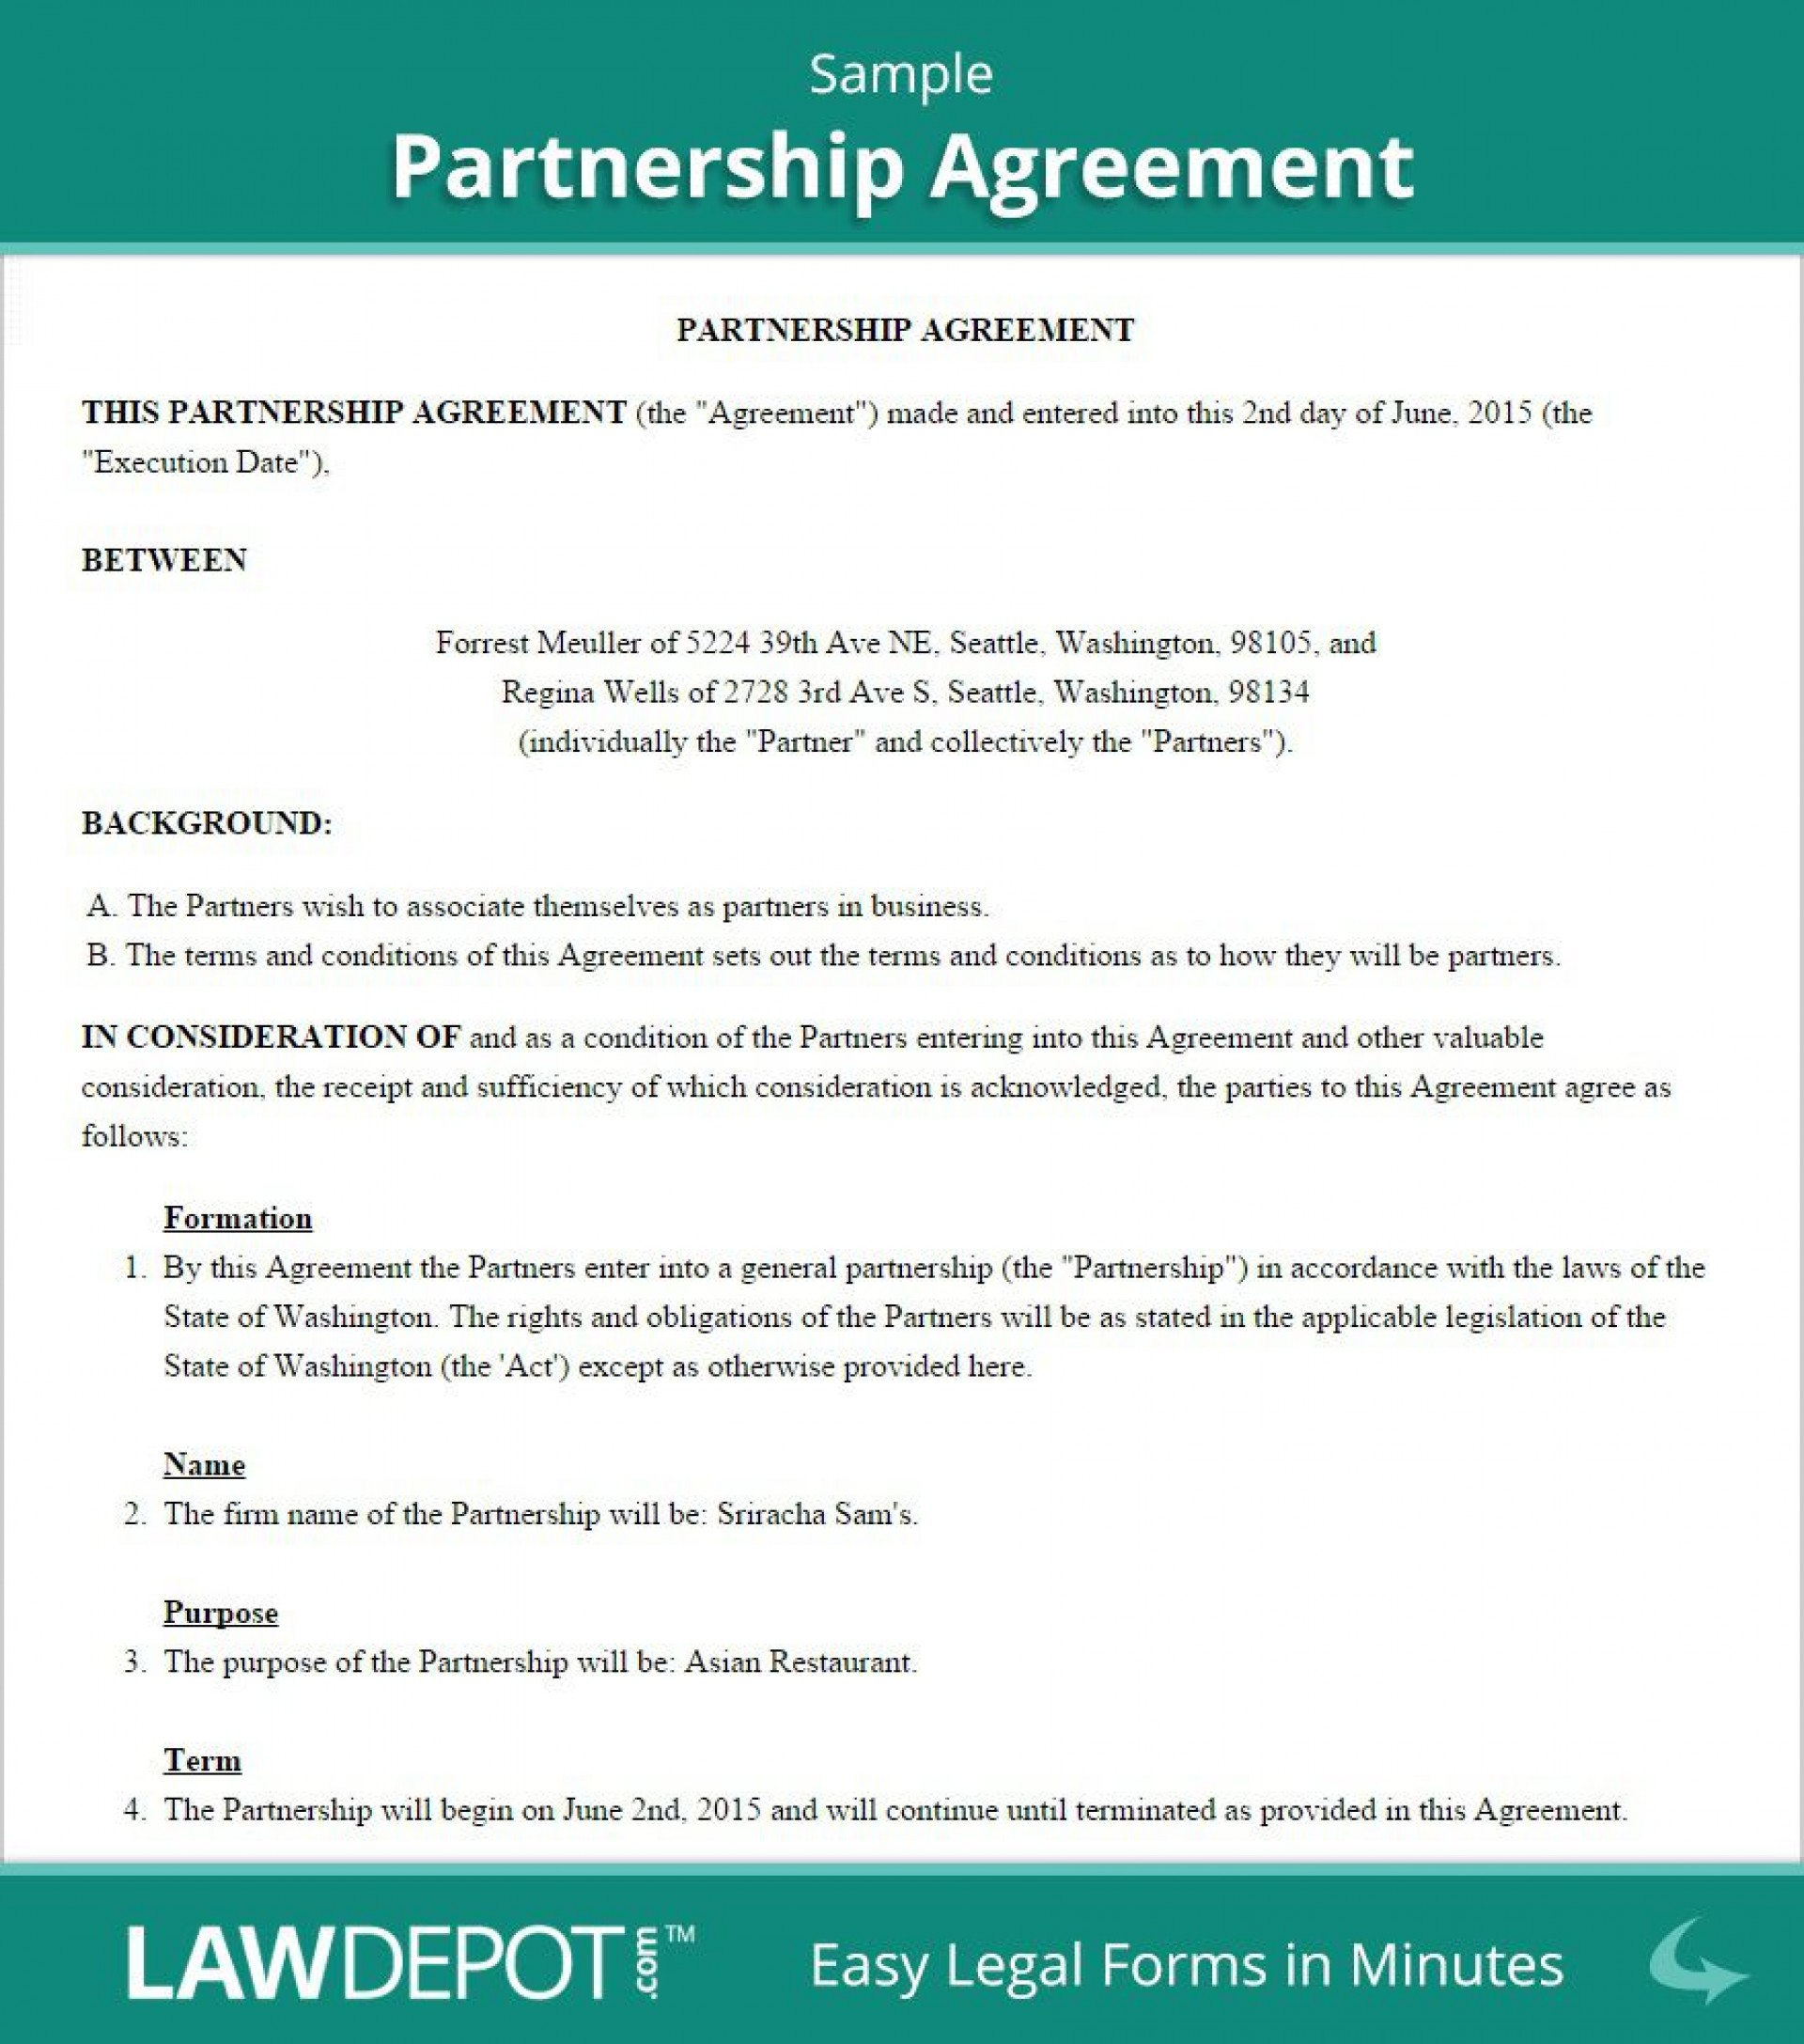 004 Outstanding Busines Partnership Contract Template High Resolution  Agreement Free Nz Word1920